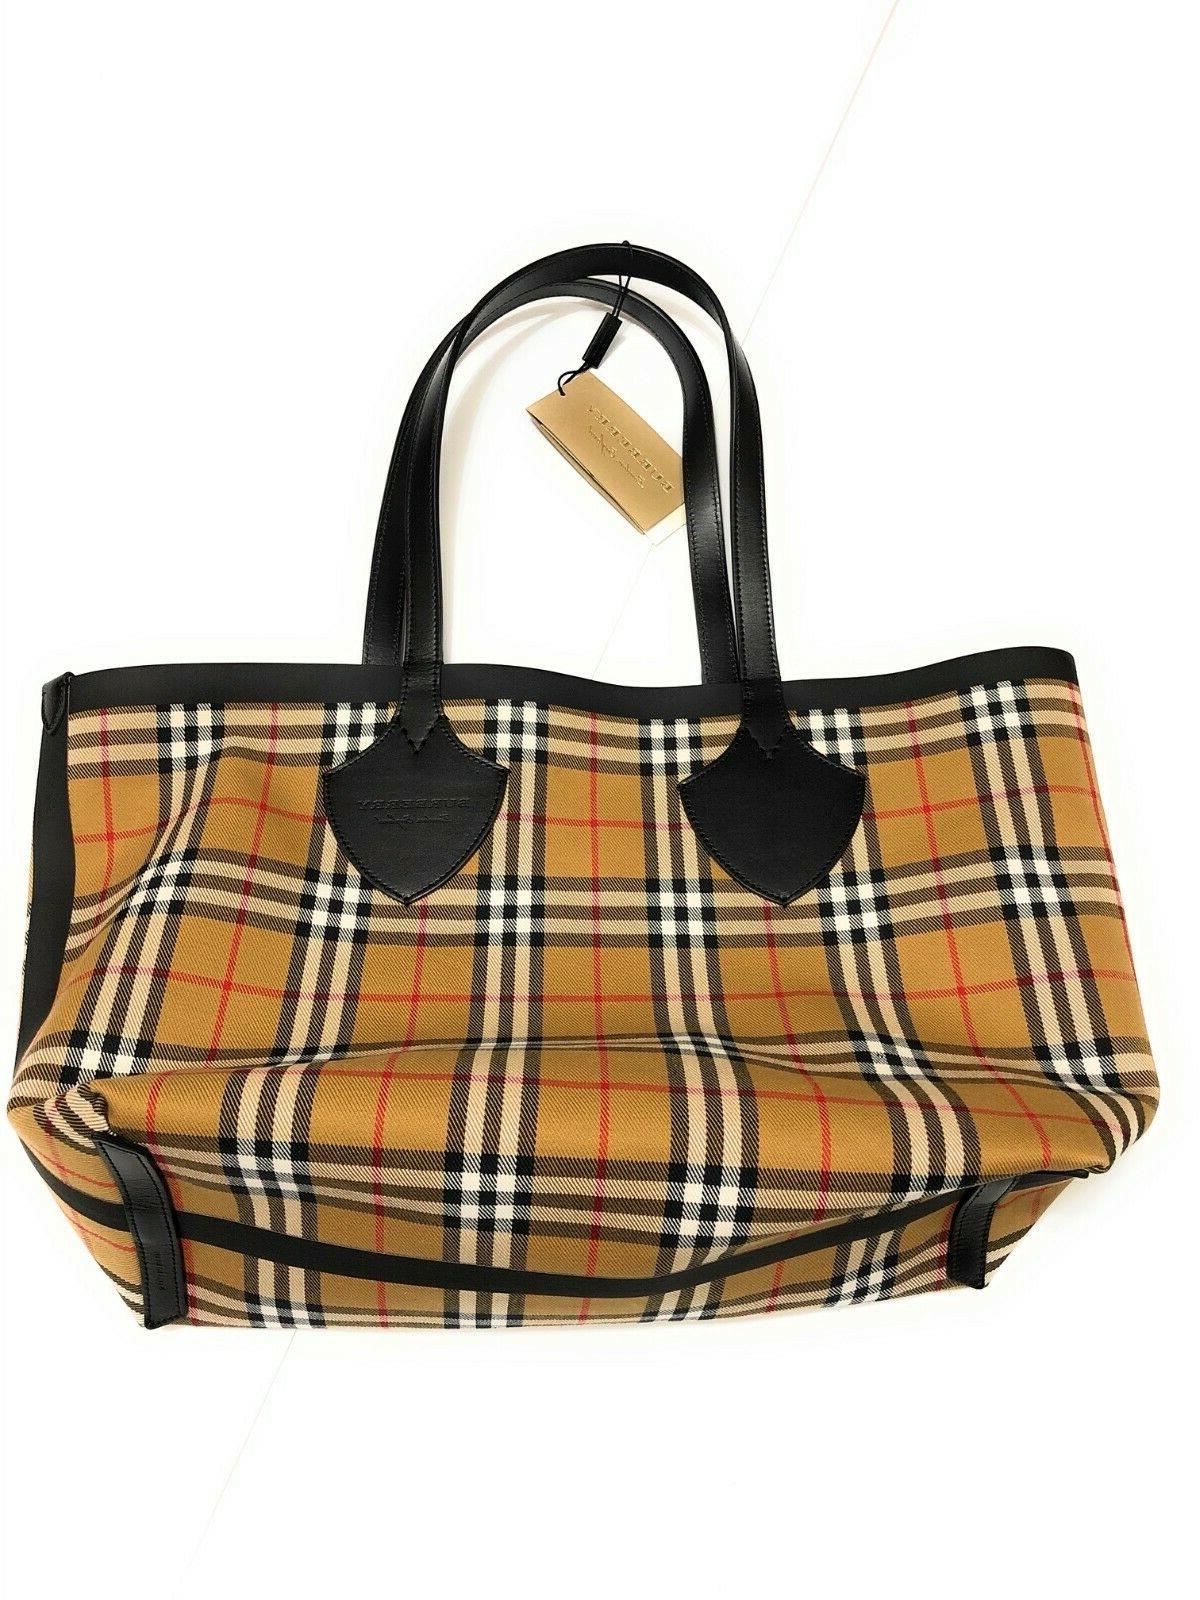 New Burberry Medium Giant Reversible Tote Bag Authentic Yell